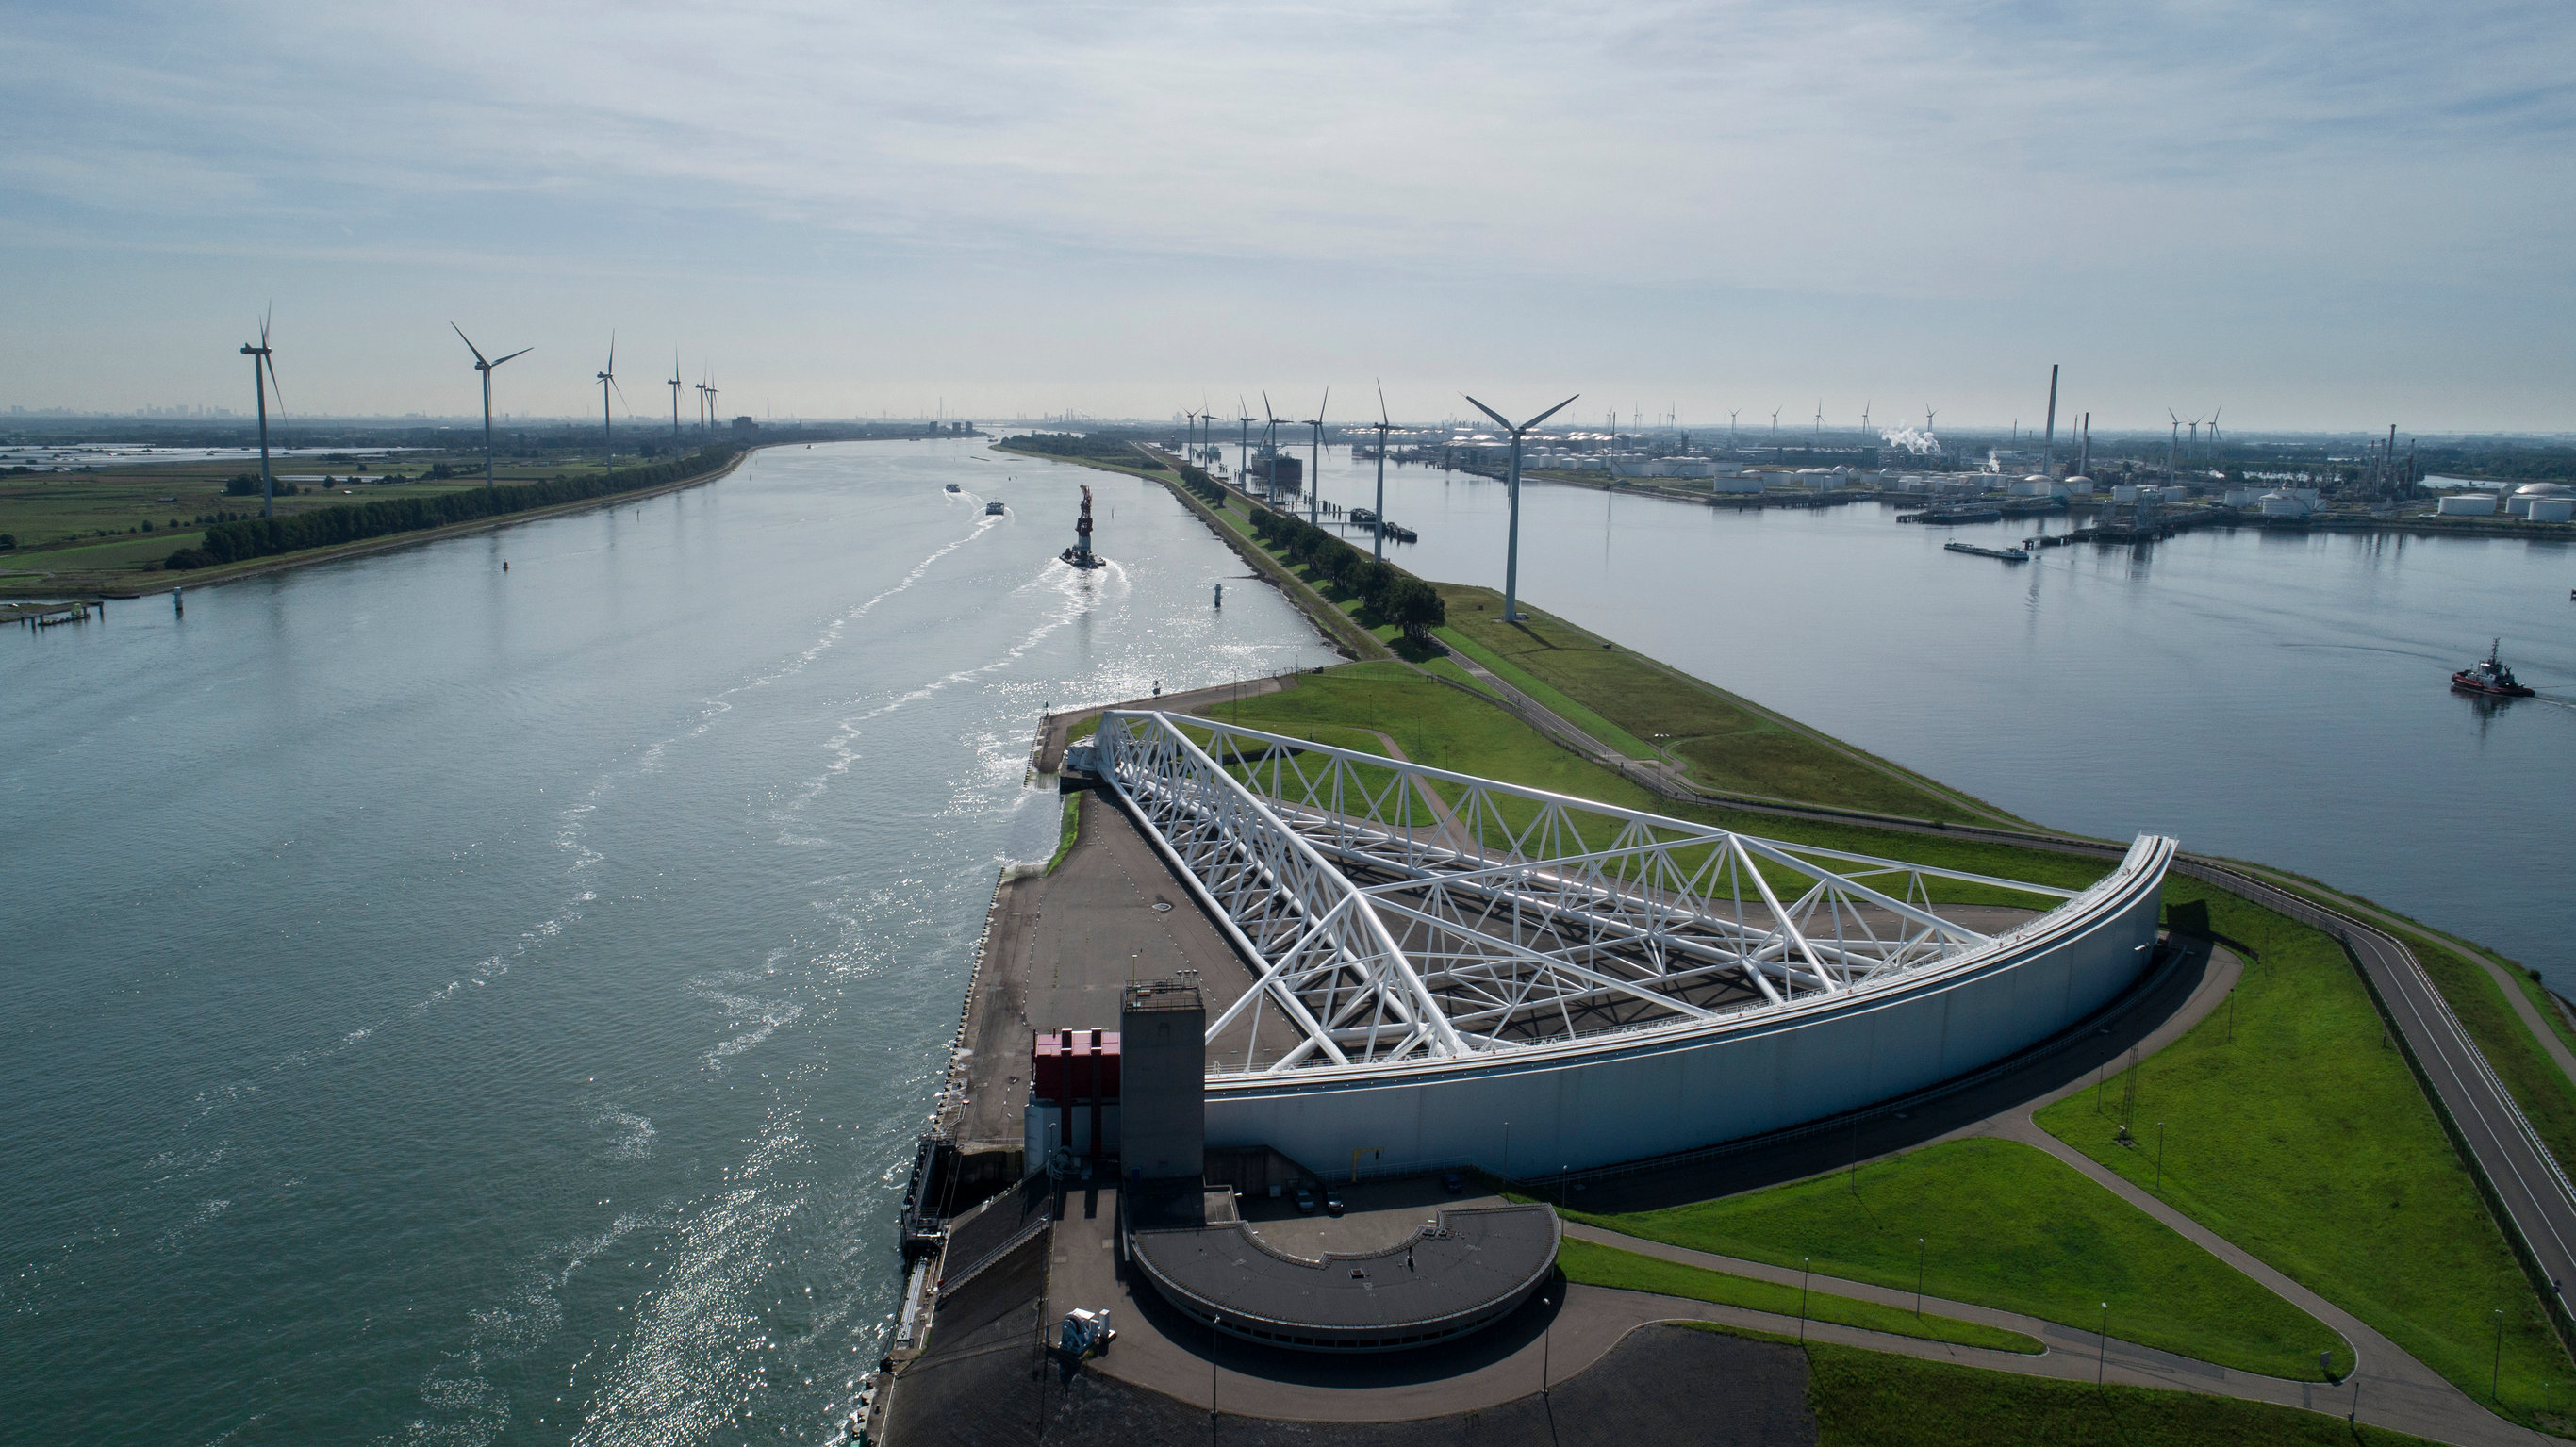 Aerial picture of Maeslantkering storm surge barrier on the Nieu